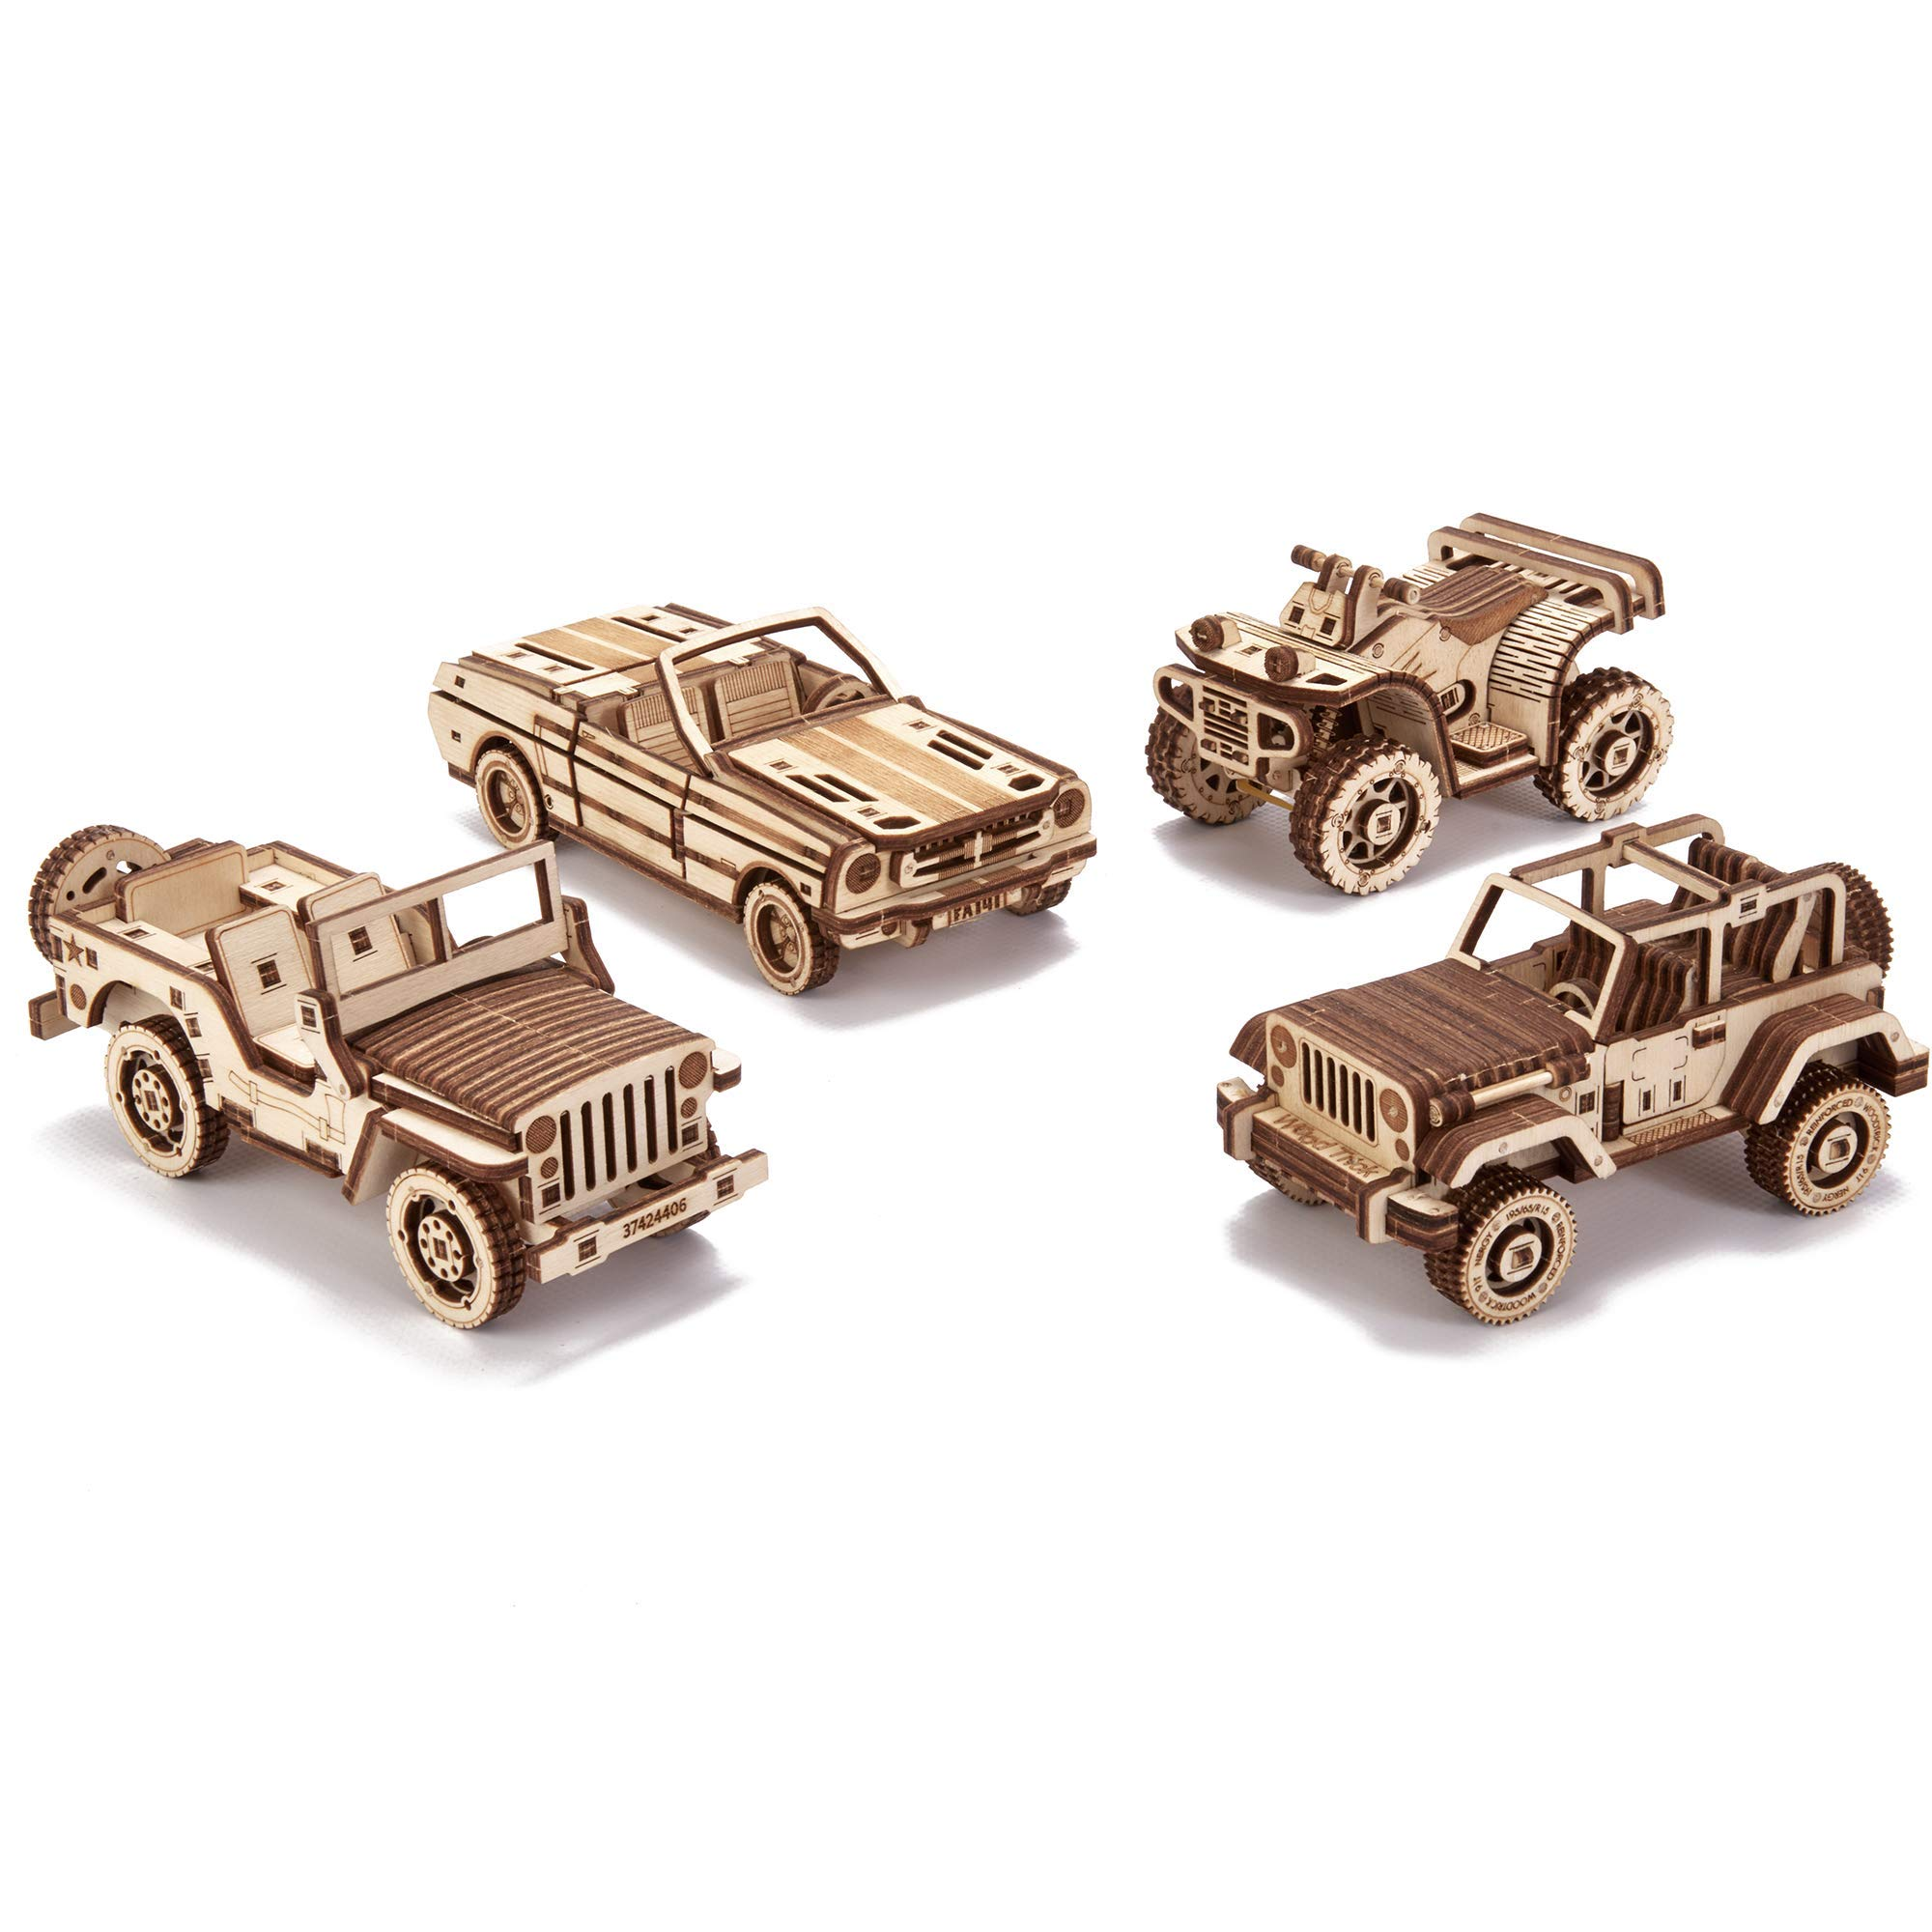 Wood Trick 4-Pack Mechanical Model Cars Kits to Build - Jeep, ATV, Cabriolet, Safari - Set of Cars Playset - Moving Parts - 3D Wooden Puzzle, Assembly Constructor, Brain Teaser for Kids and Adults by Wood Trick